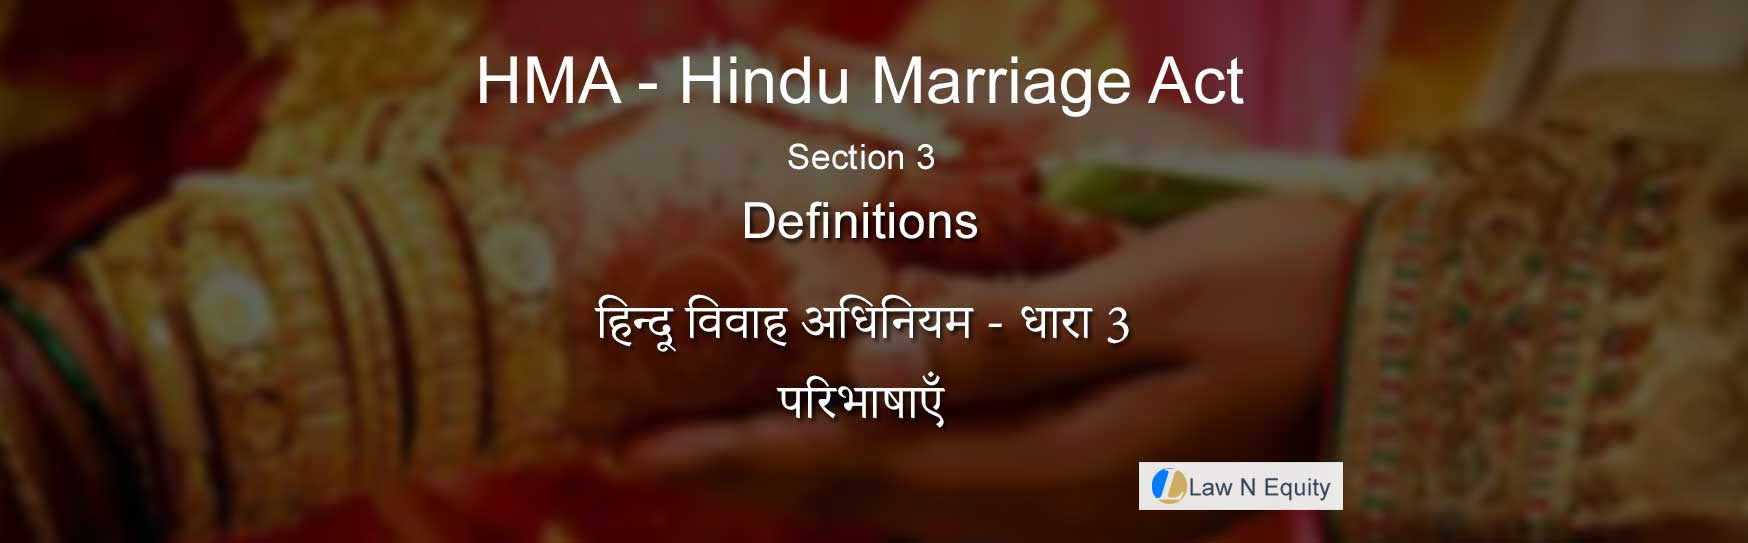 Hindu Marriage Act(HMA) Section 3